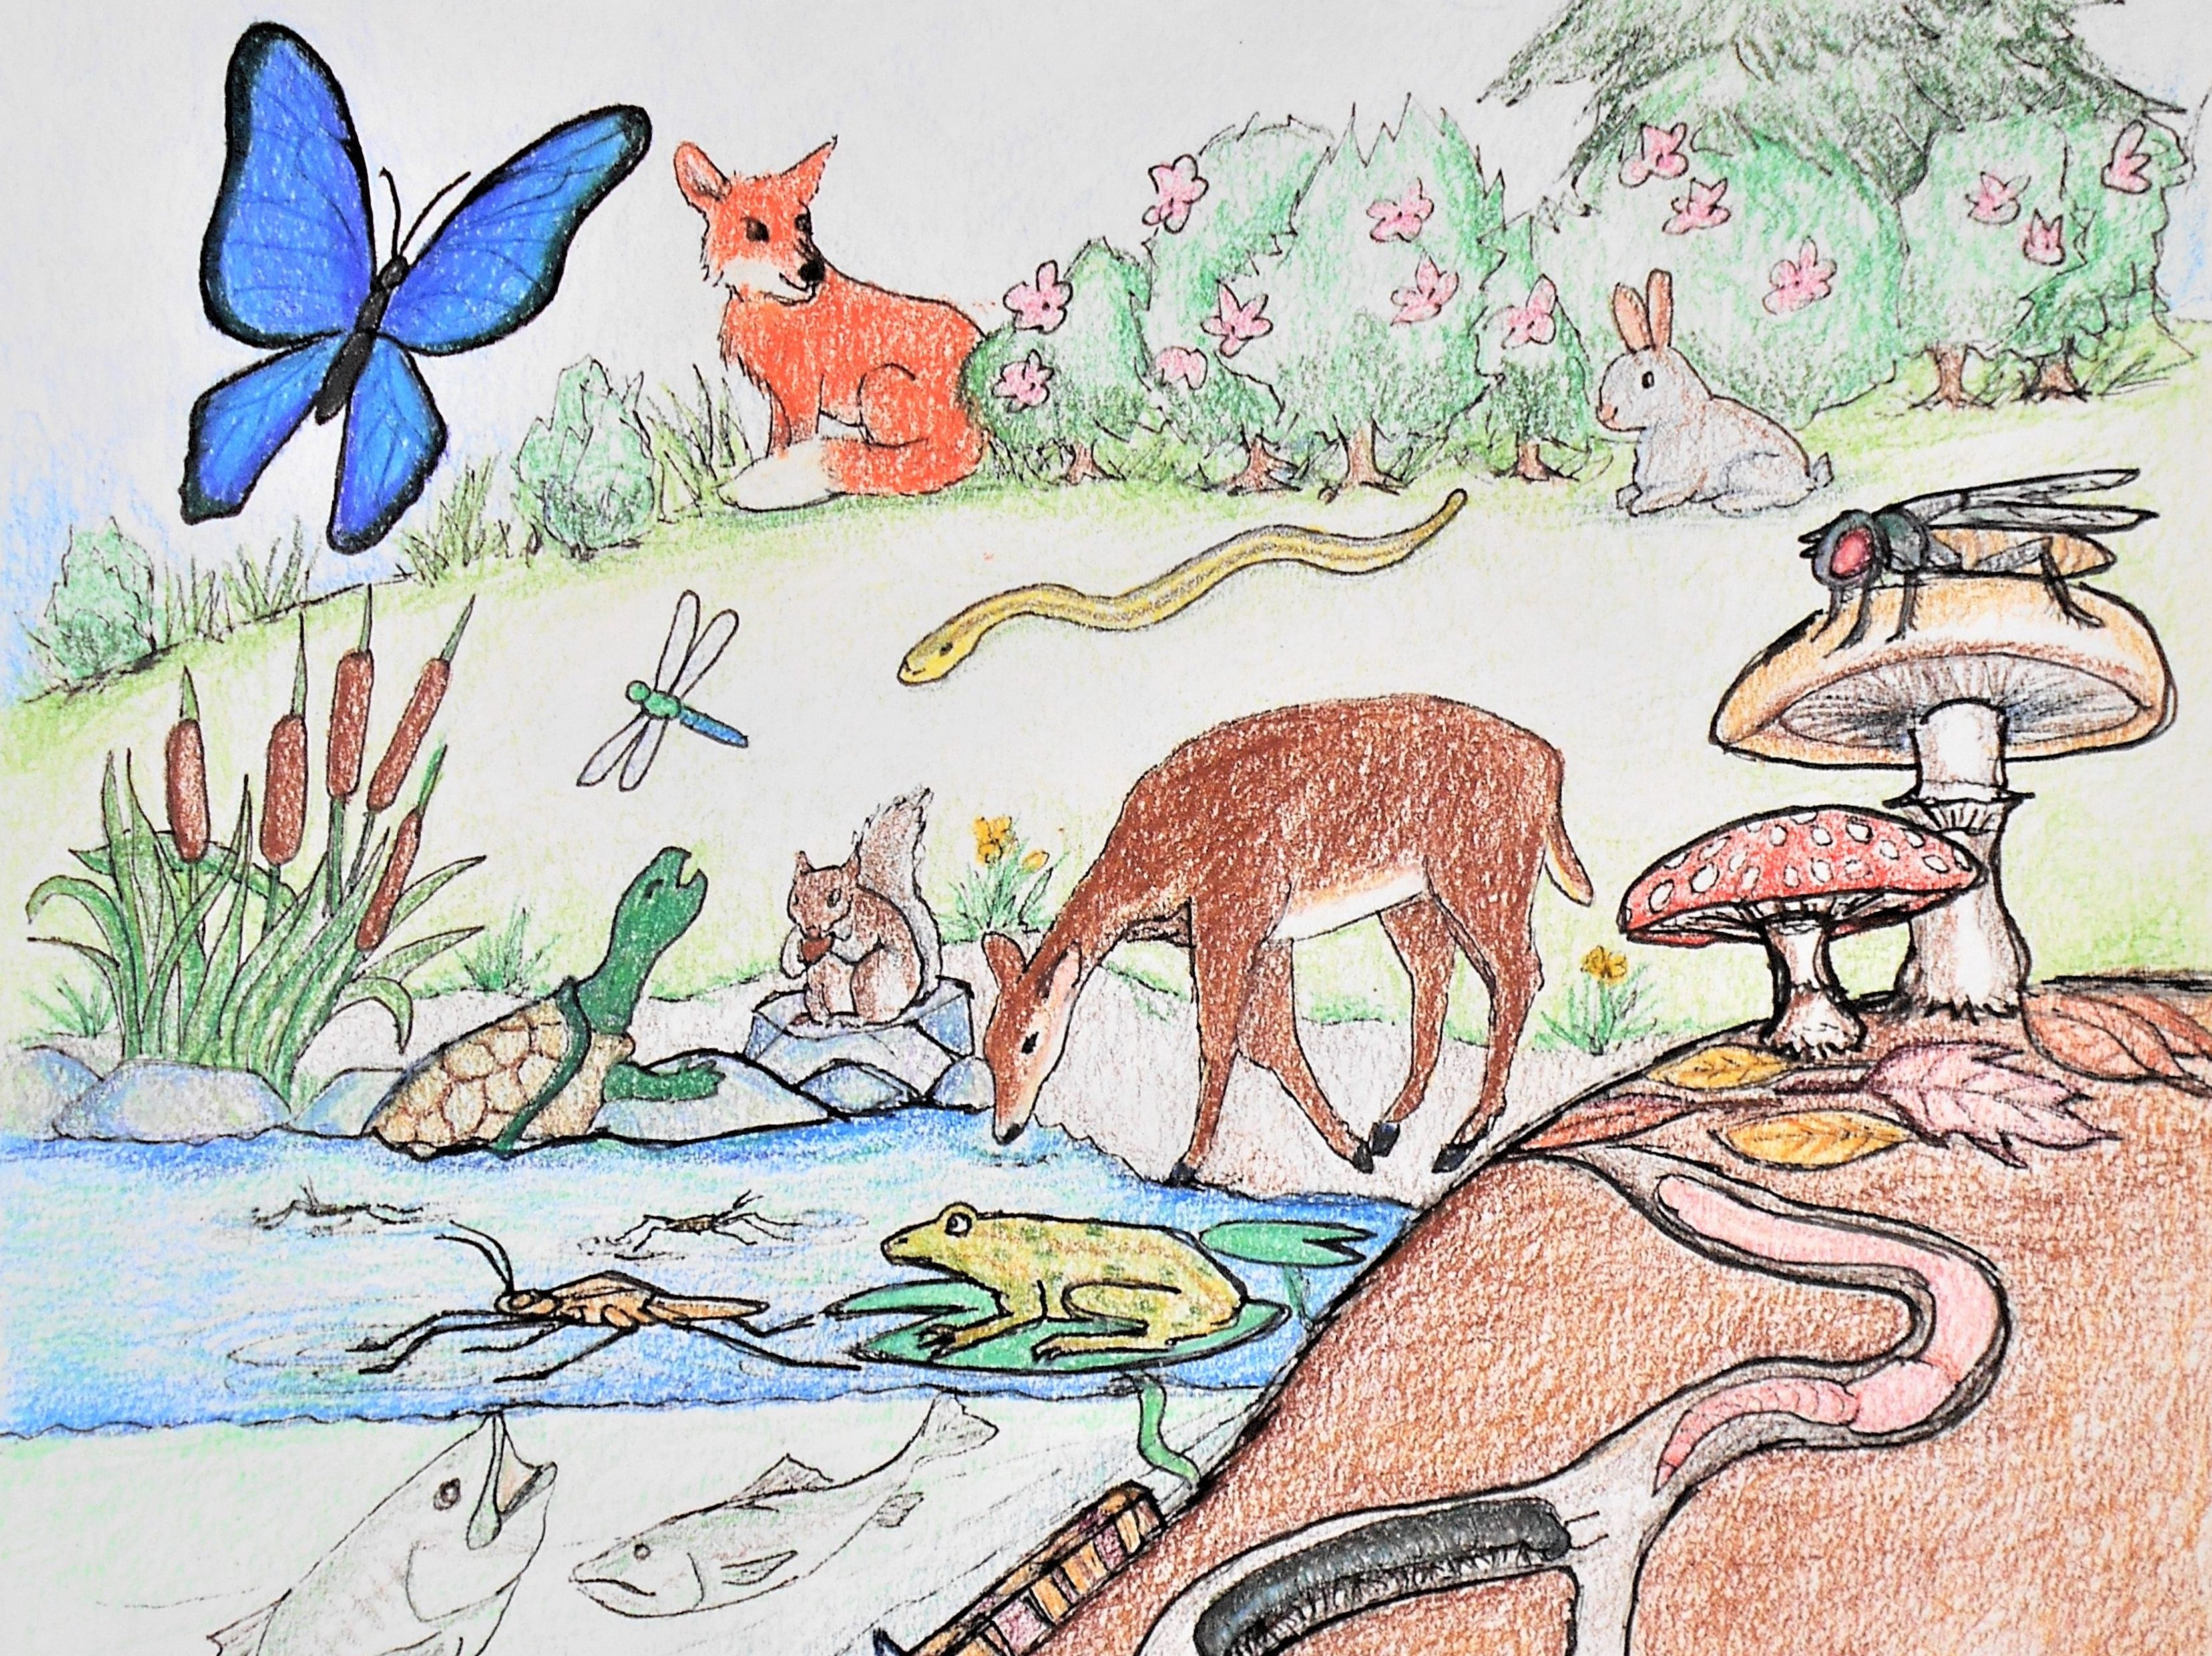 A food web poster of animals, plants, and fungi in an ecosystem